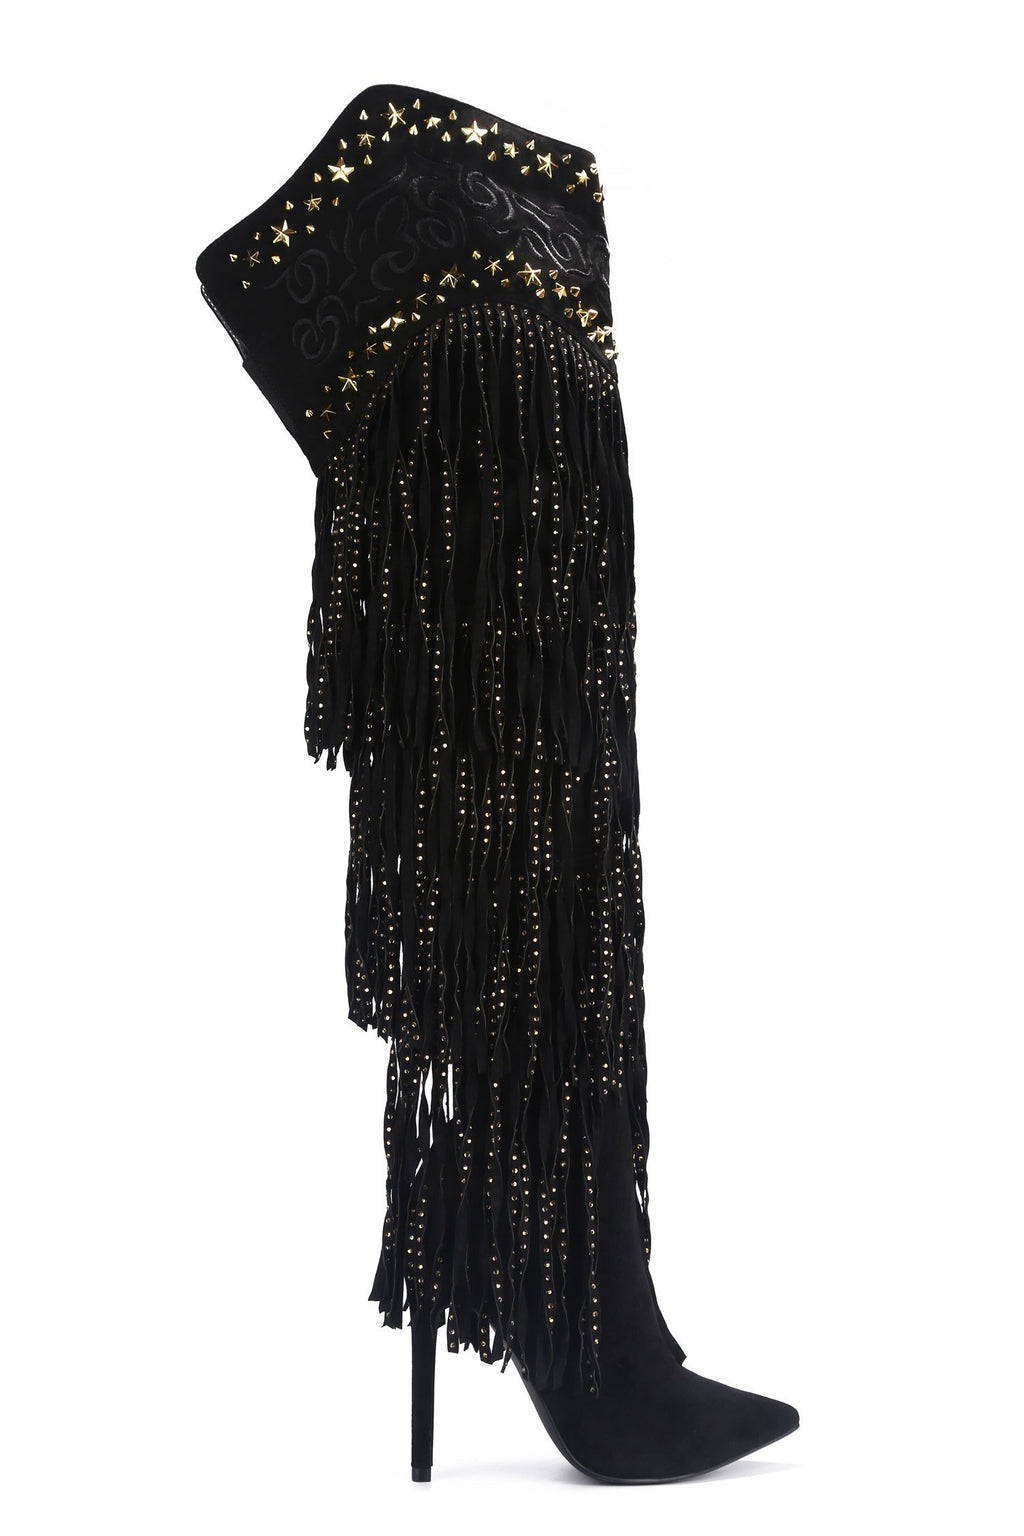 Cape Robbin High Tide Black Over The Knee Heel With Fringe and Studded Detail.